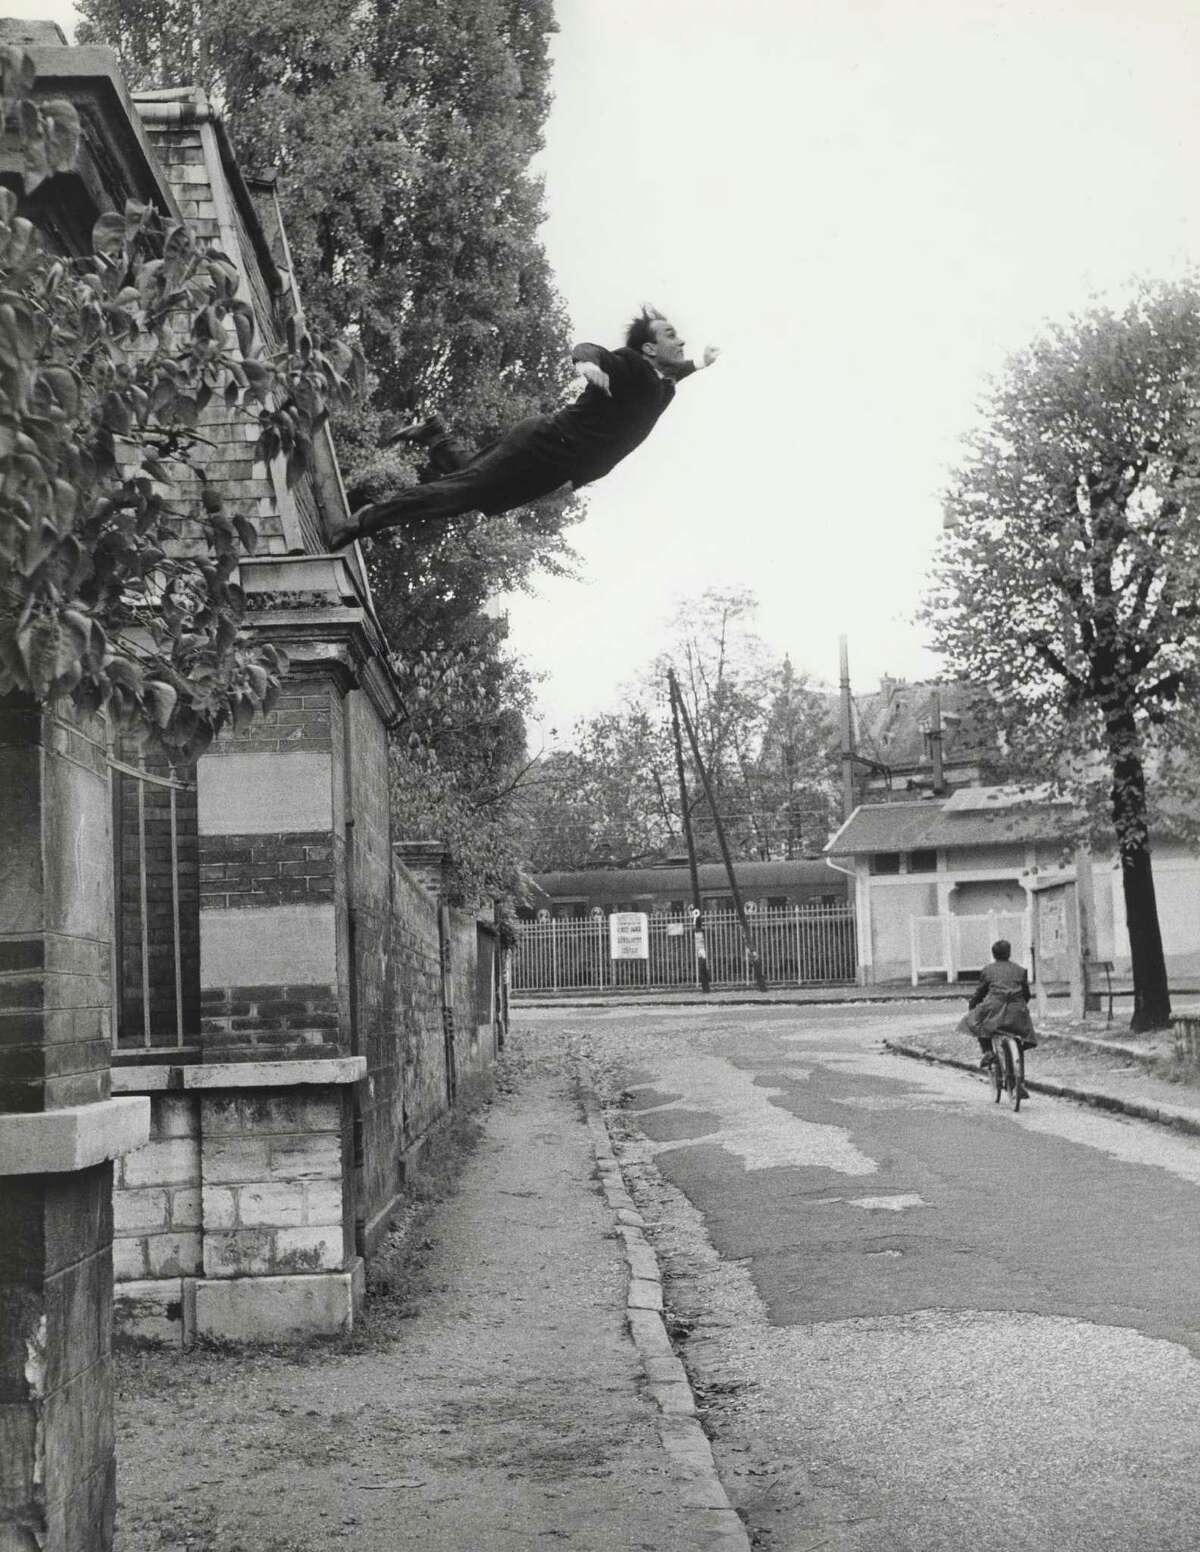 Yves Klein and Harry Shunk's